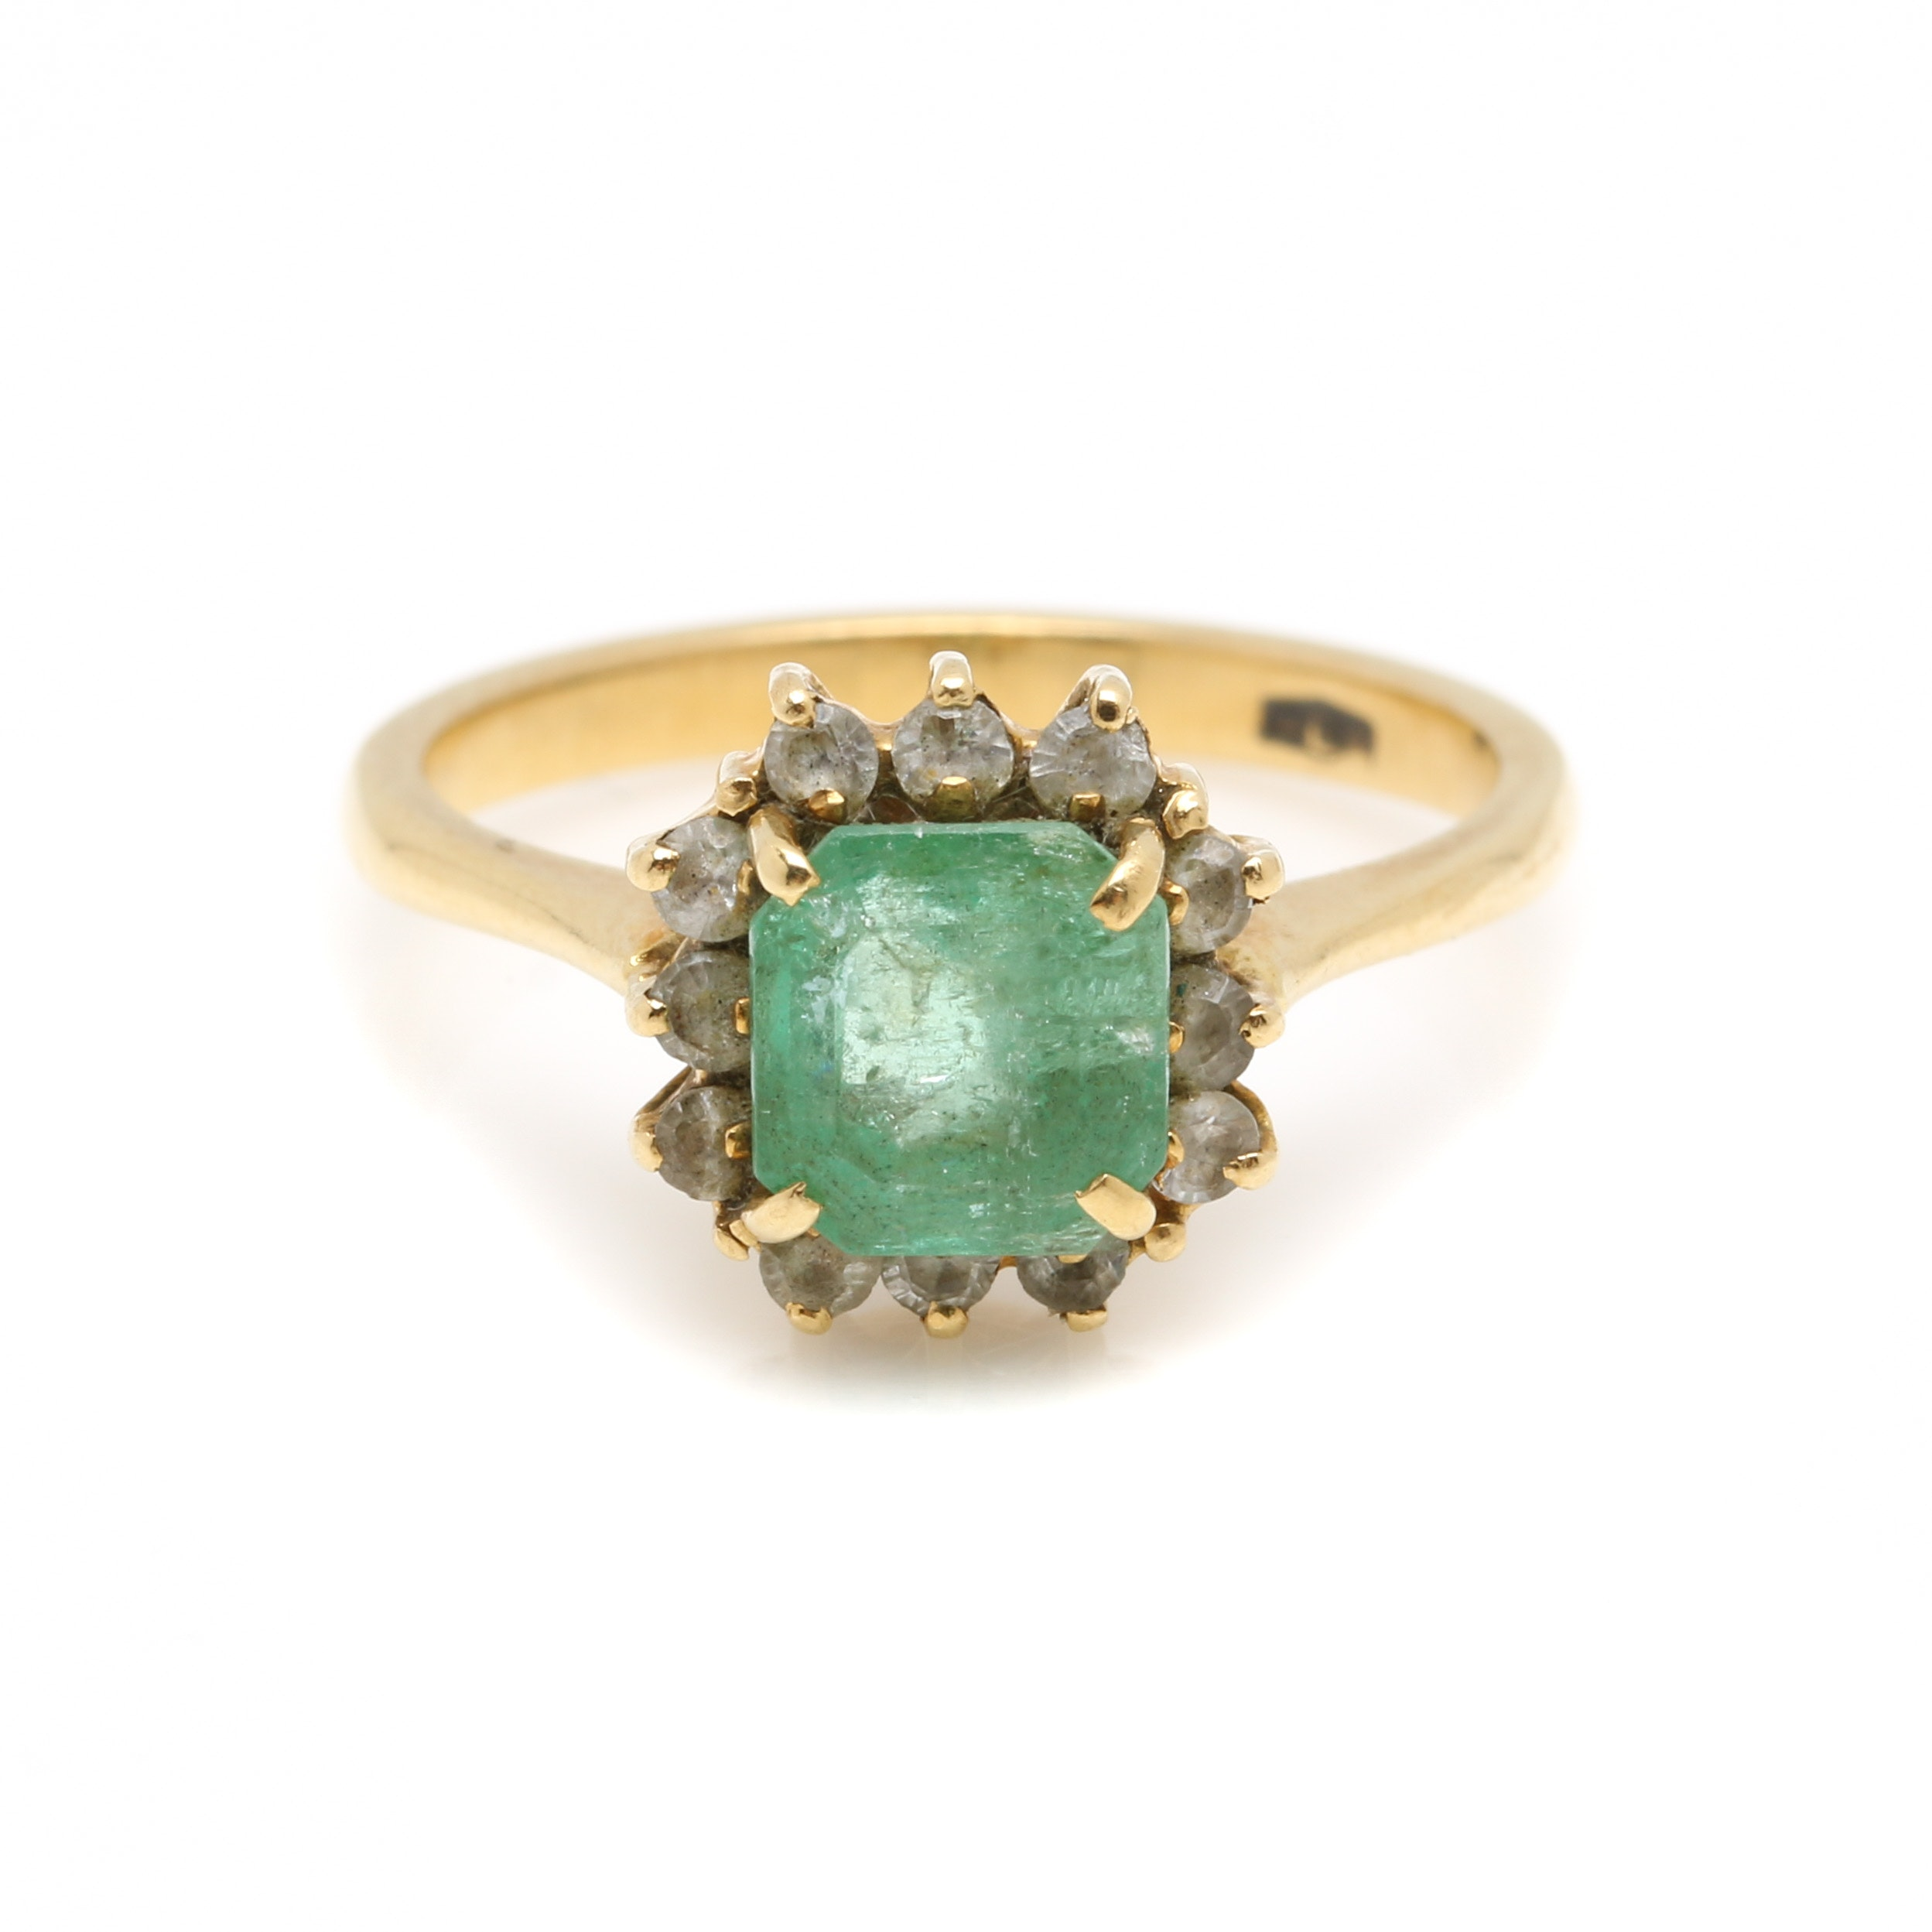 18K Yellow Gold 1.62 CT Emerald and White Zircon